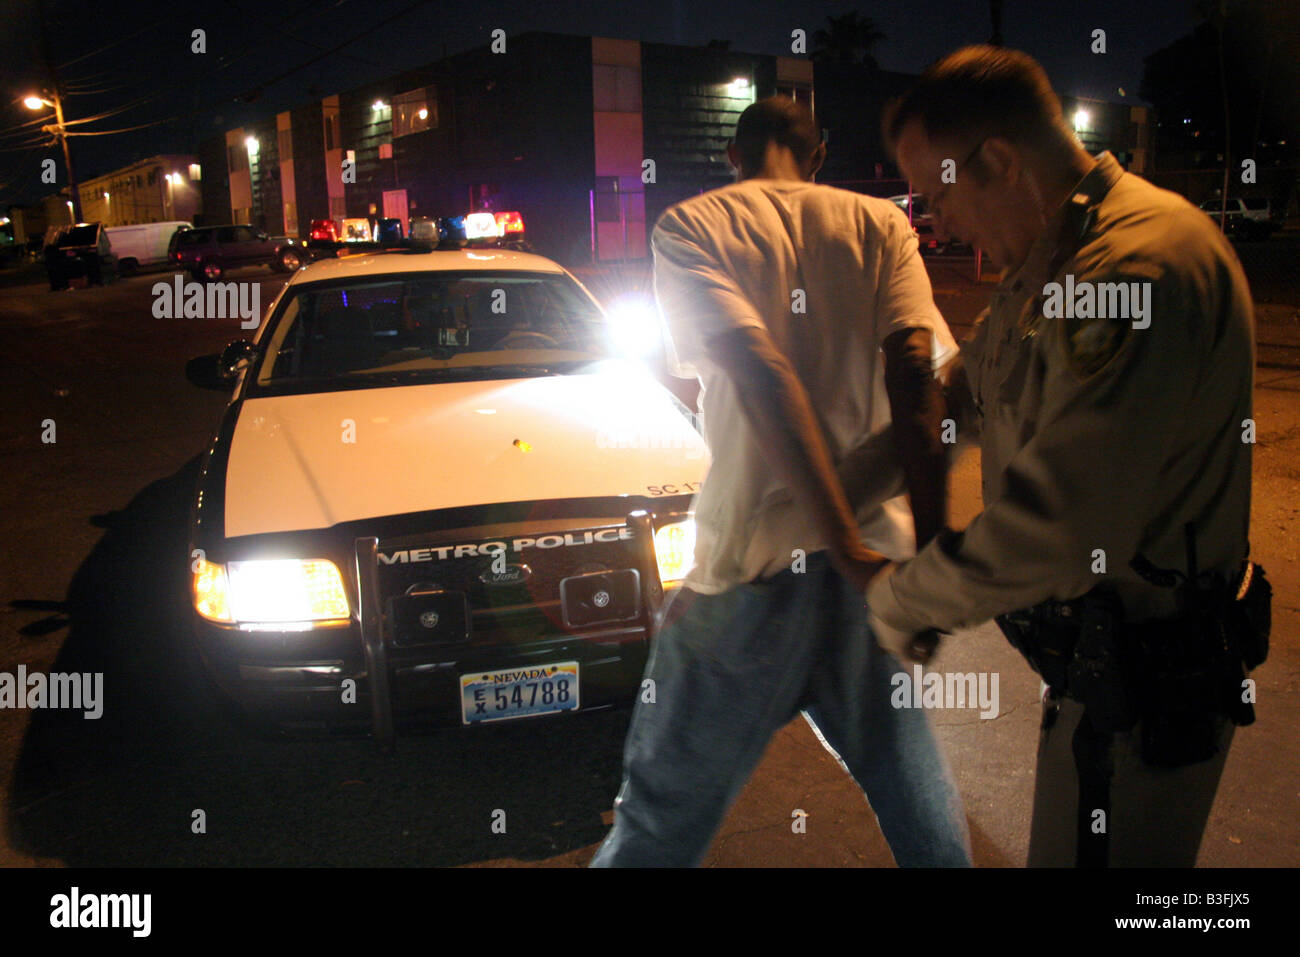 Las Vegas Police Officer searching a suspect in a back street at night - Stock Image